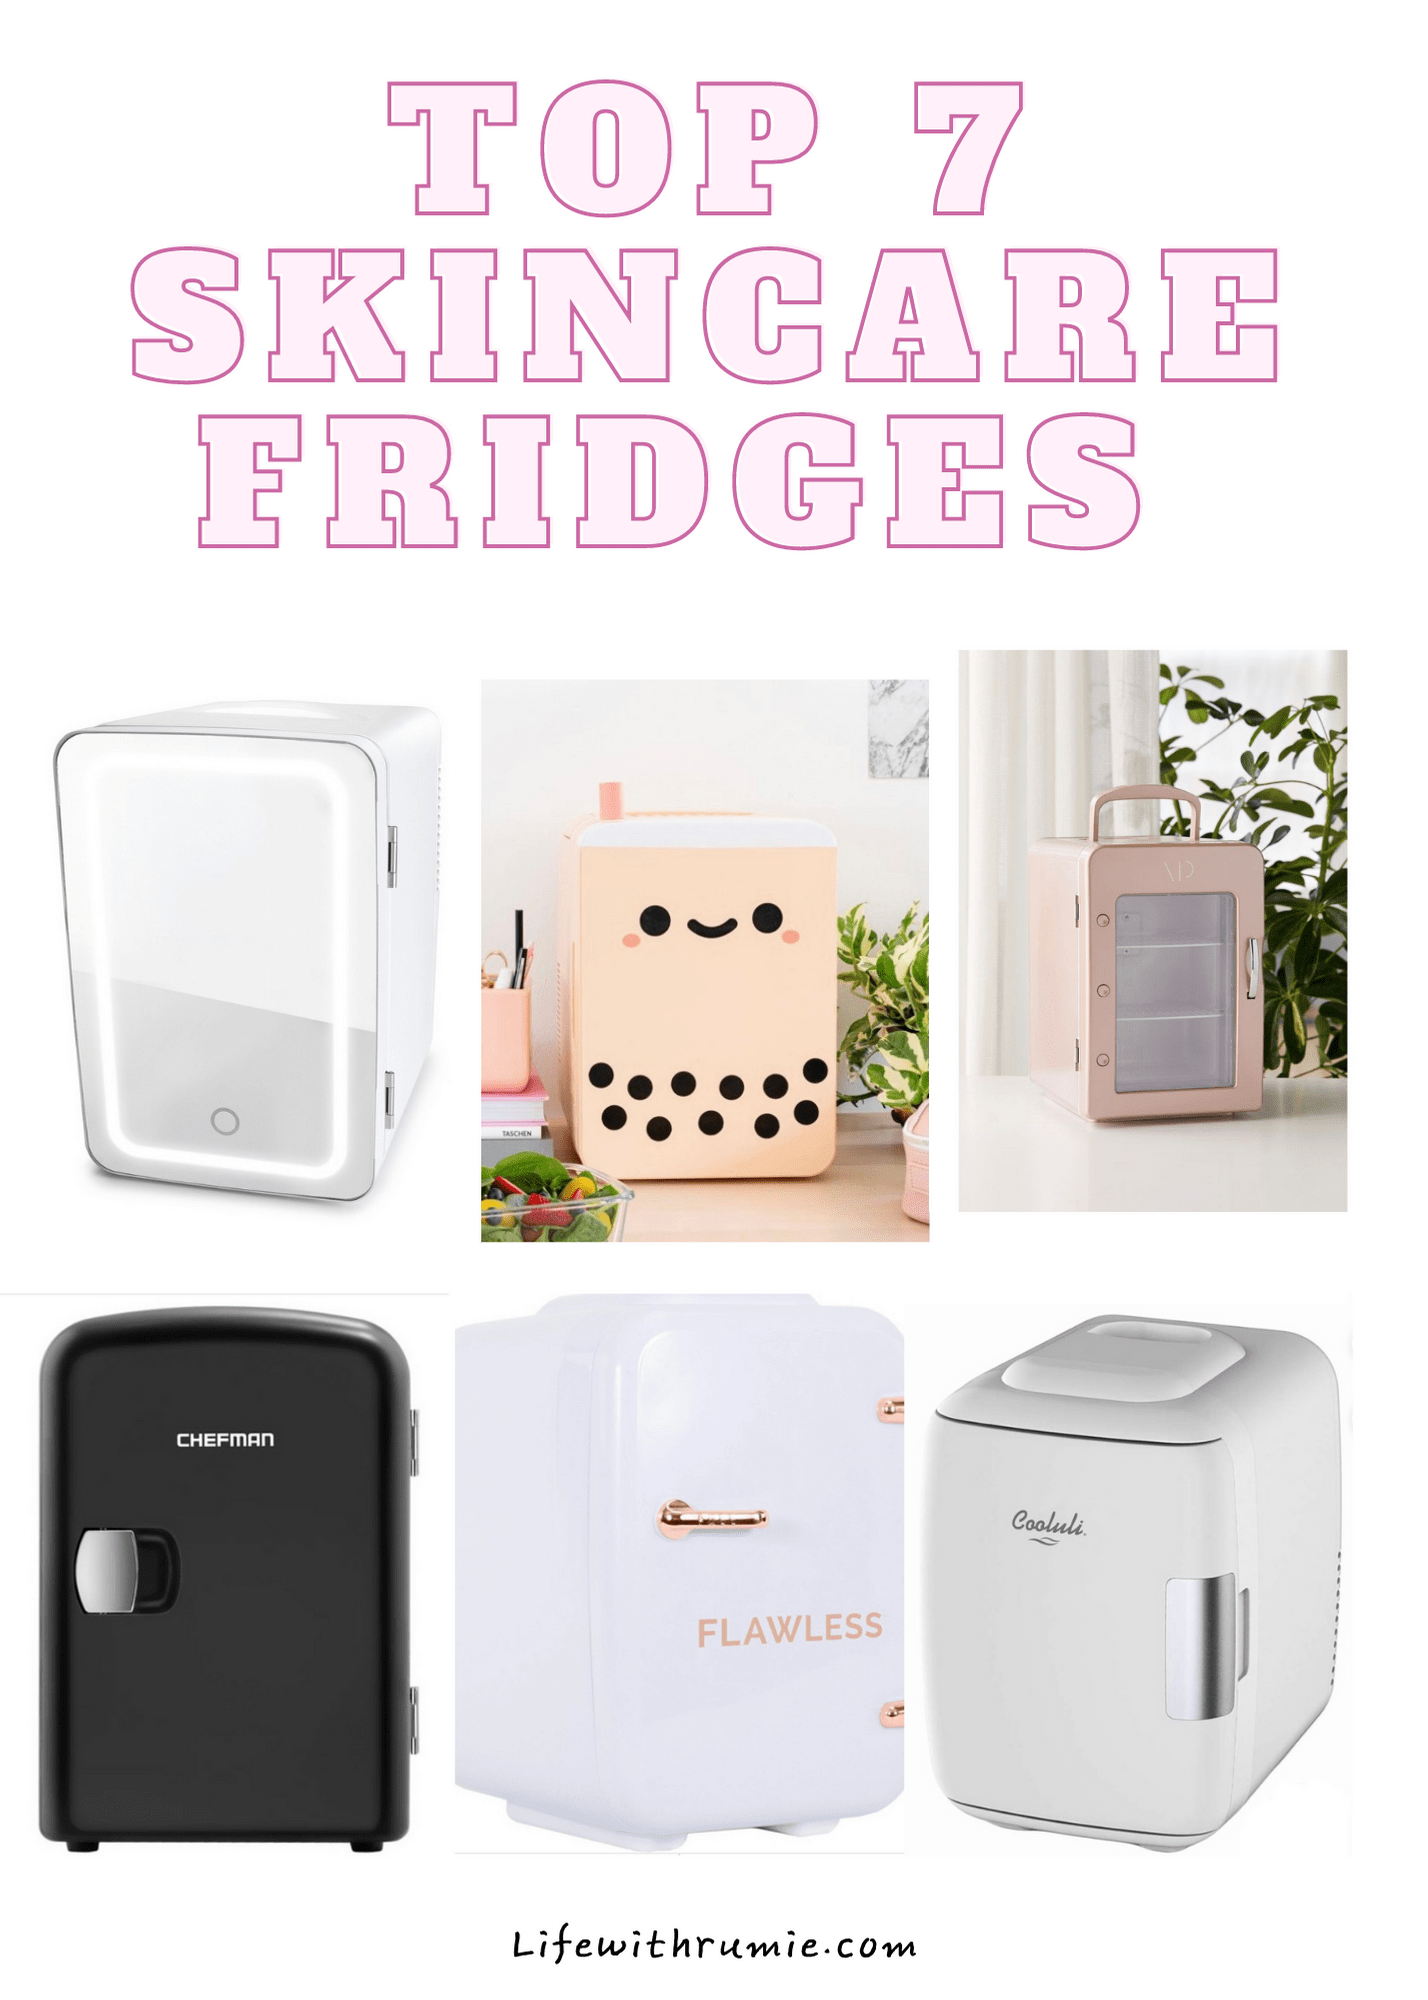 cheap skincare fridges to buy